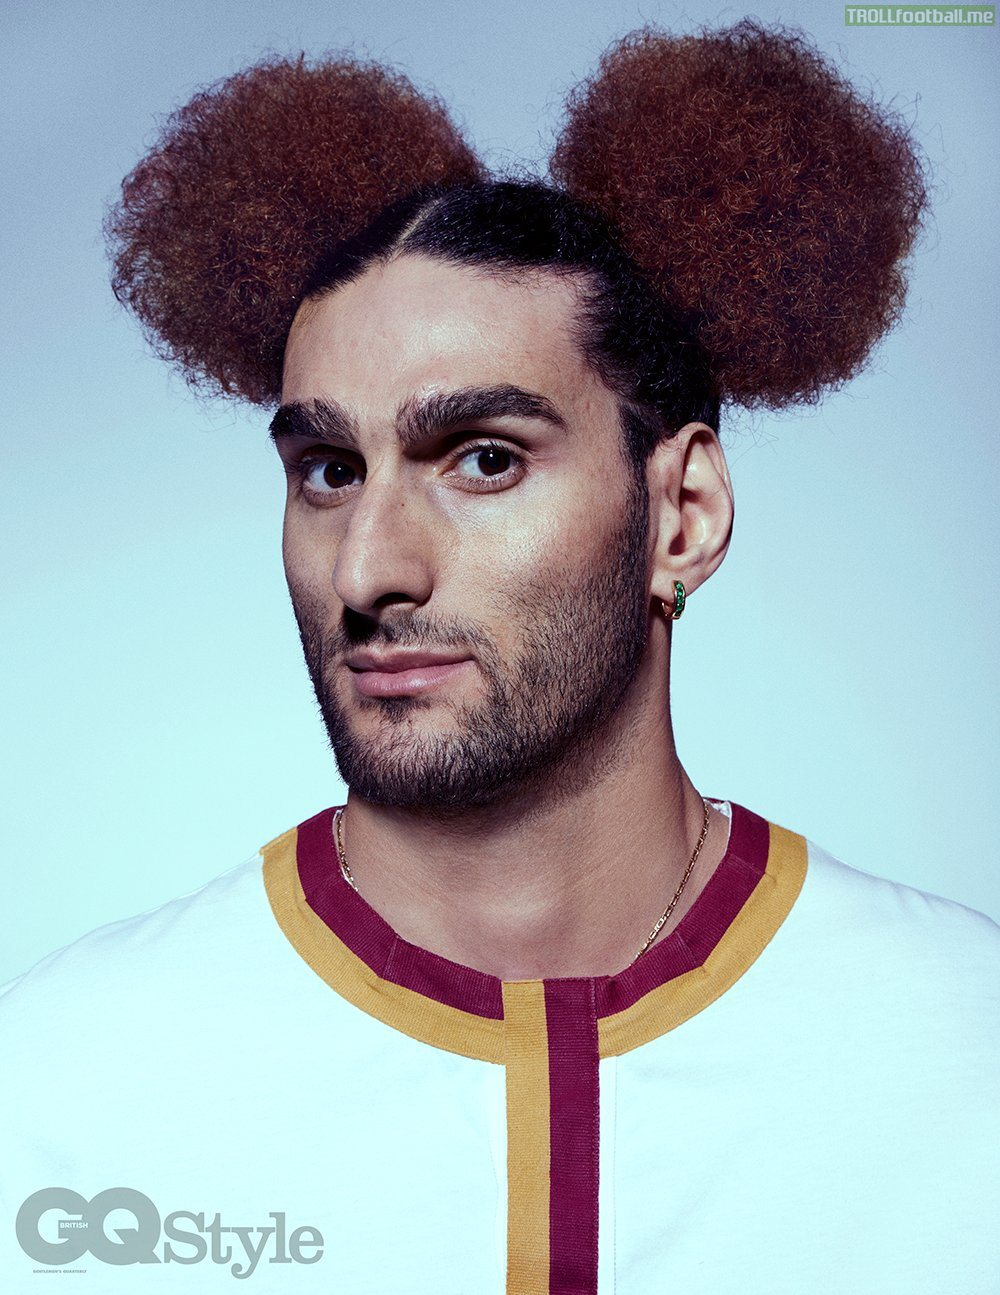 Marouane Fellaini's new hairstyle is... well... interesting!